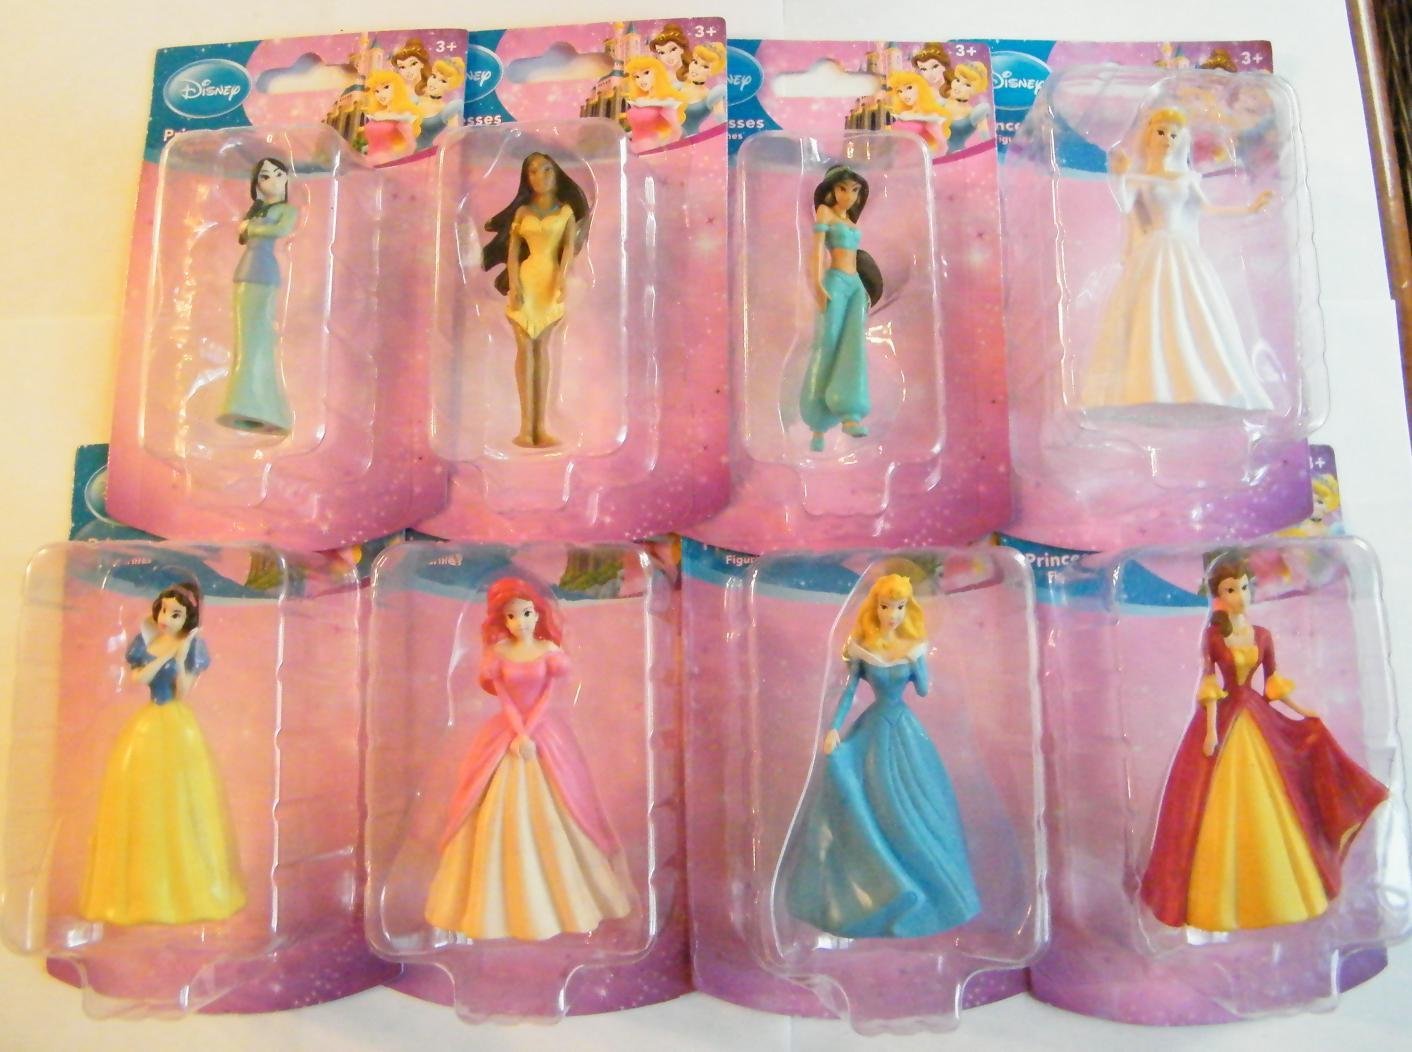 Amazoncom Disney Princess Figurines Cake Topper Belle